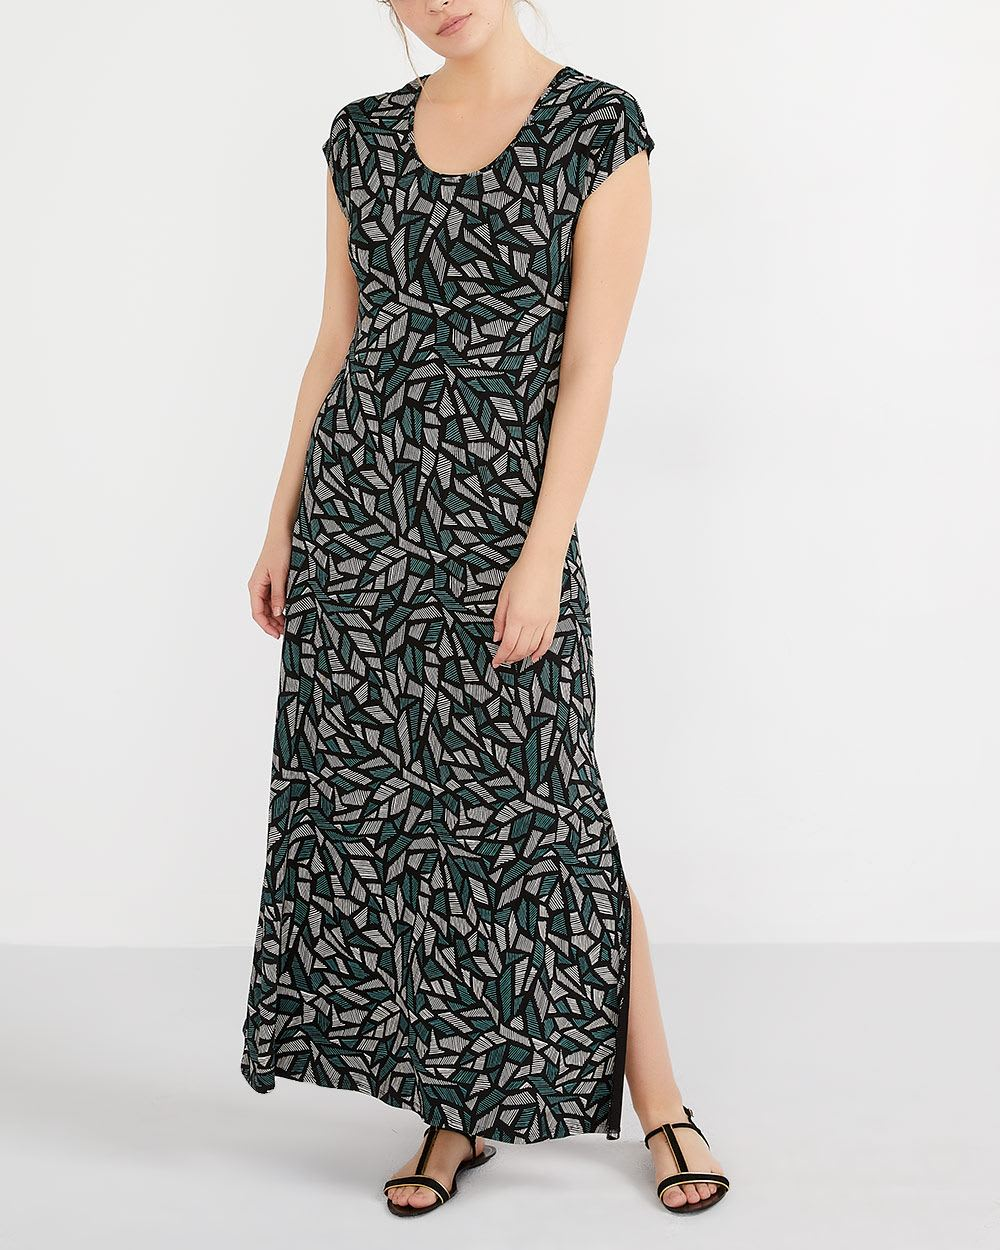 bac22b4ed1d Printed Maxi Dress with Cap Sleeves